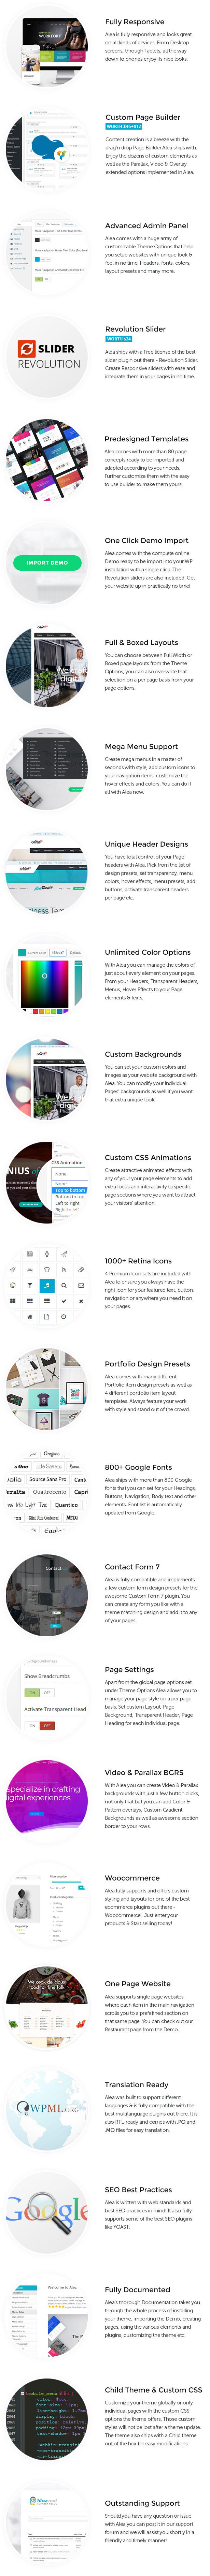 Alea - Business Multipurpose WordPress Theme - 9